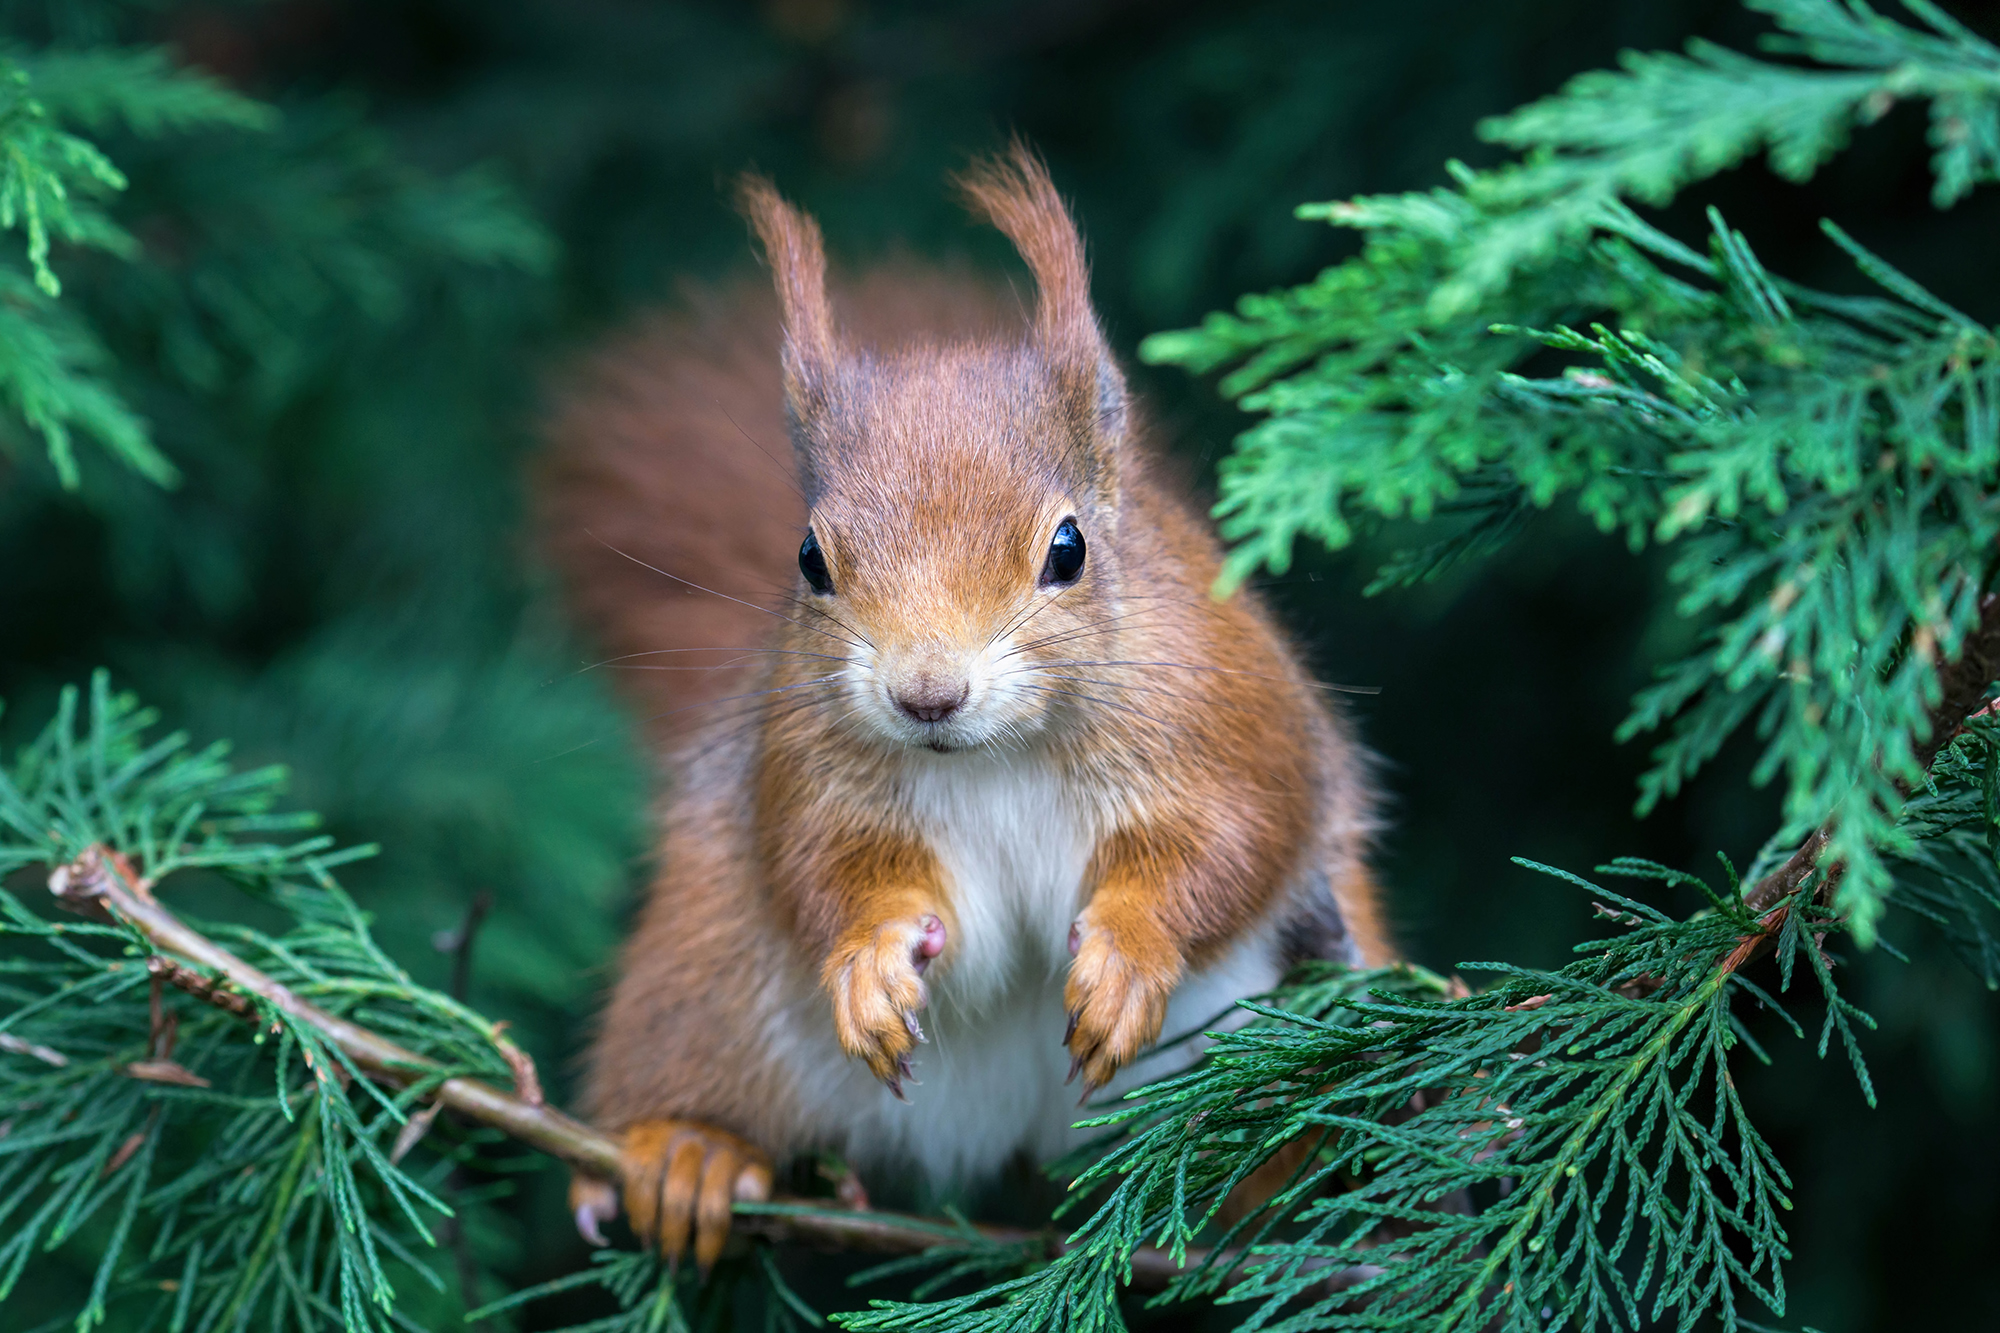 Red squirrel in a conifer